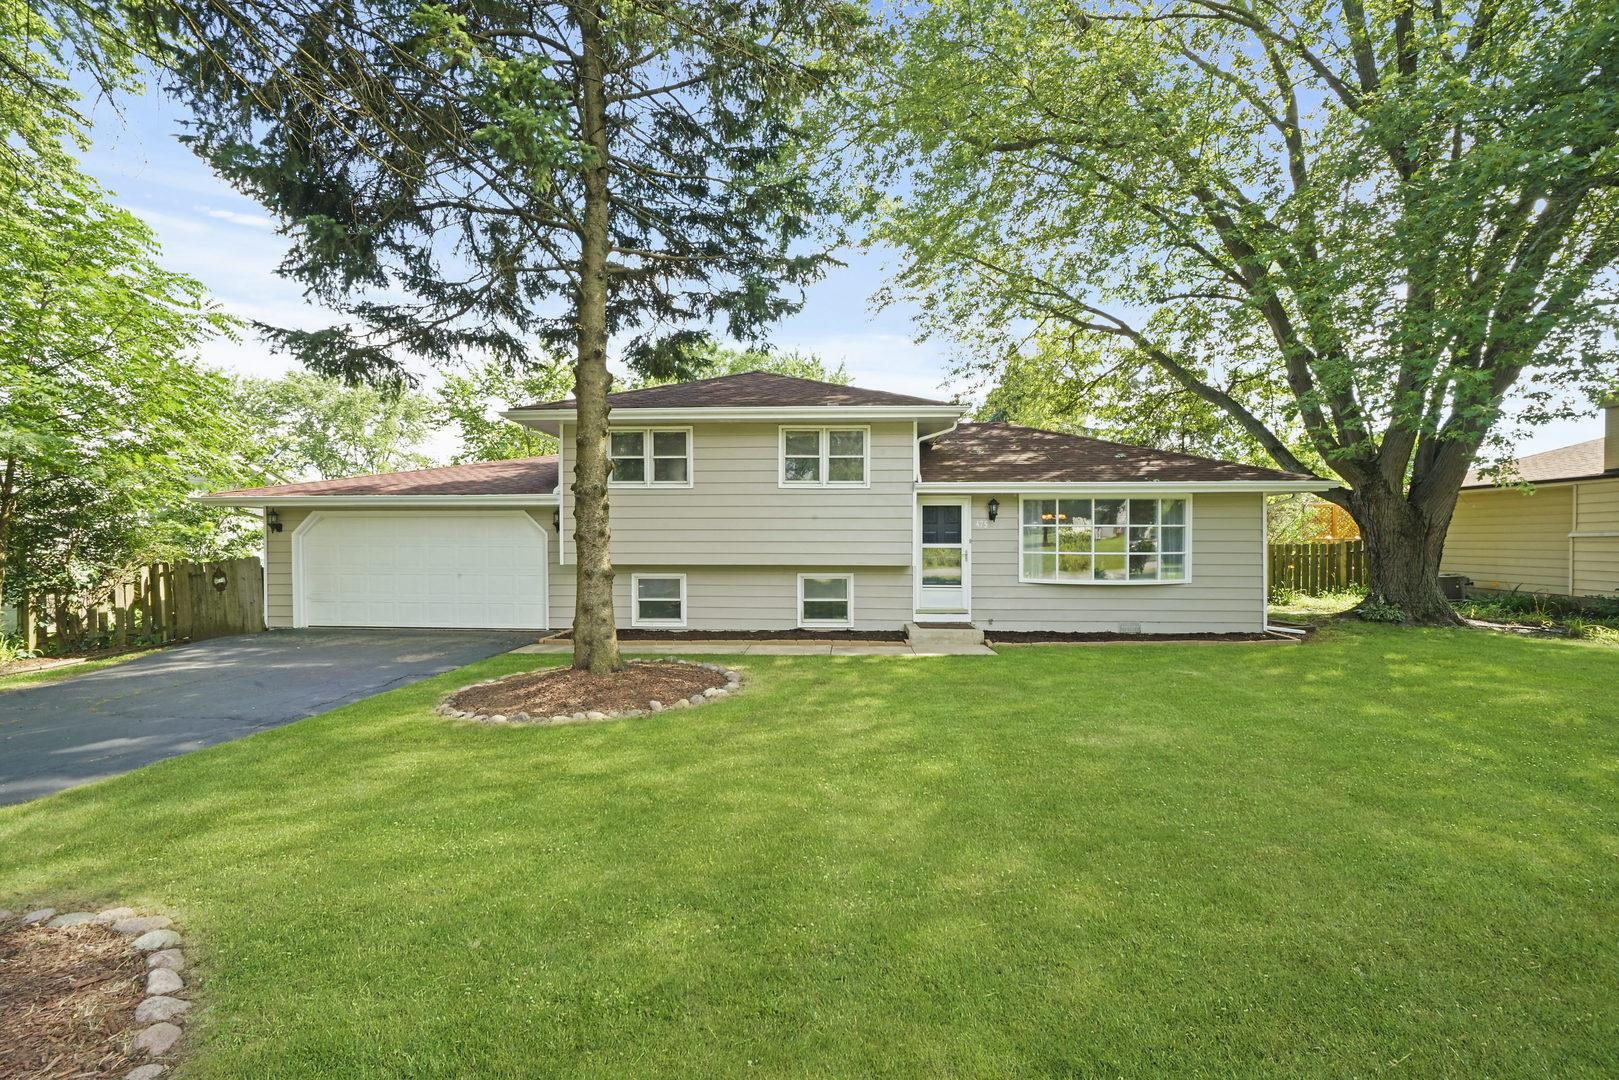 28W475 Bolles Avenue, West Chicago, IL 60185 - #: 10792584